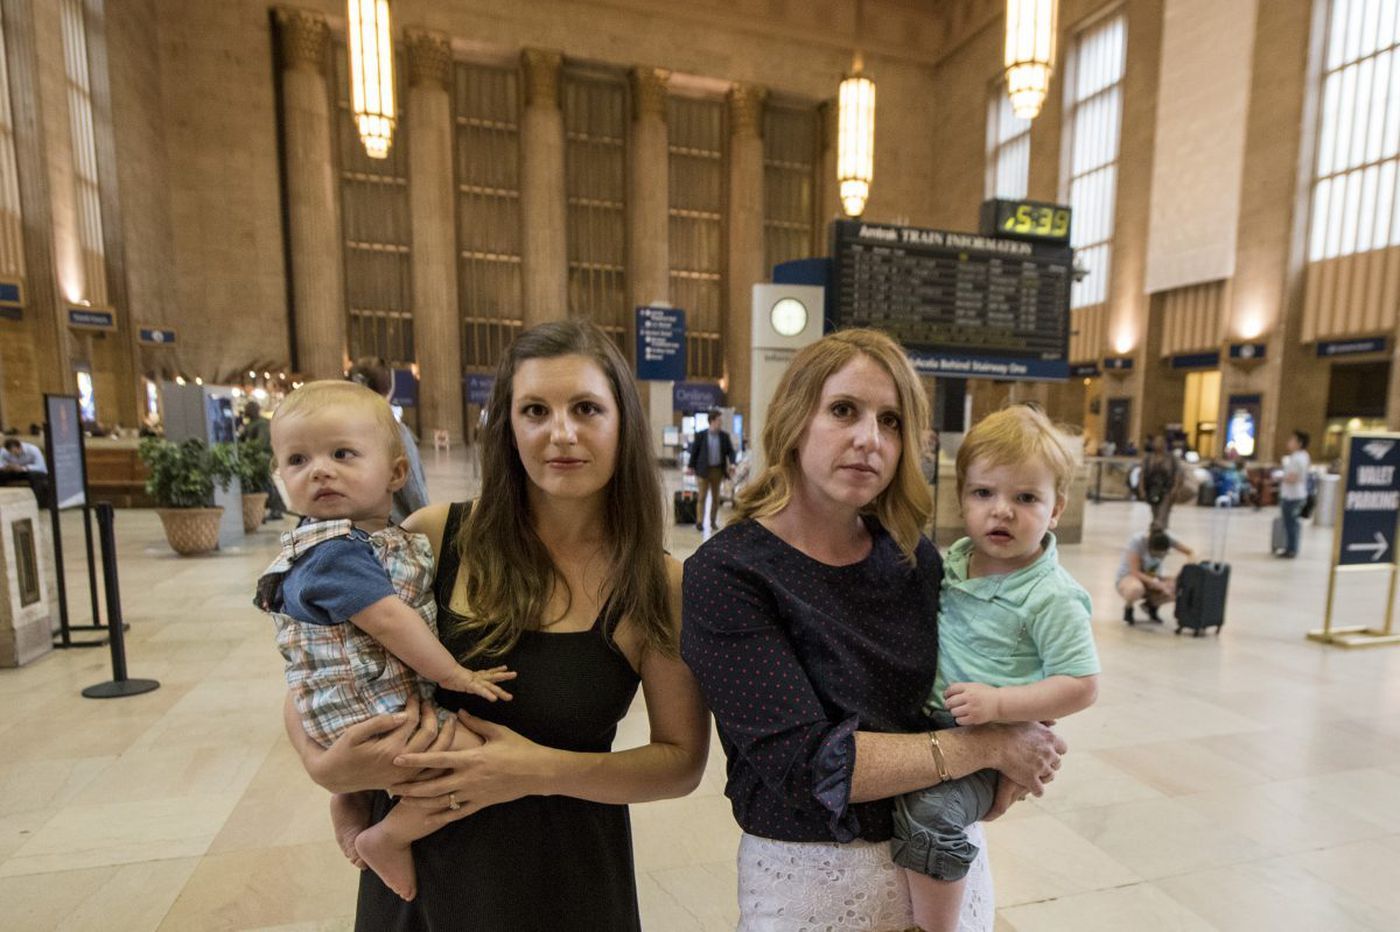 Philly moms petition Amtrak to provide lactation facilities